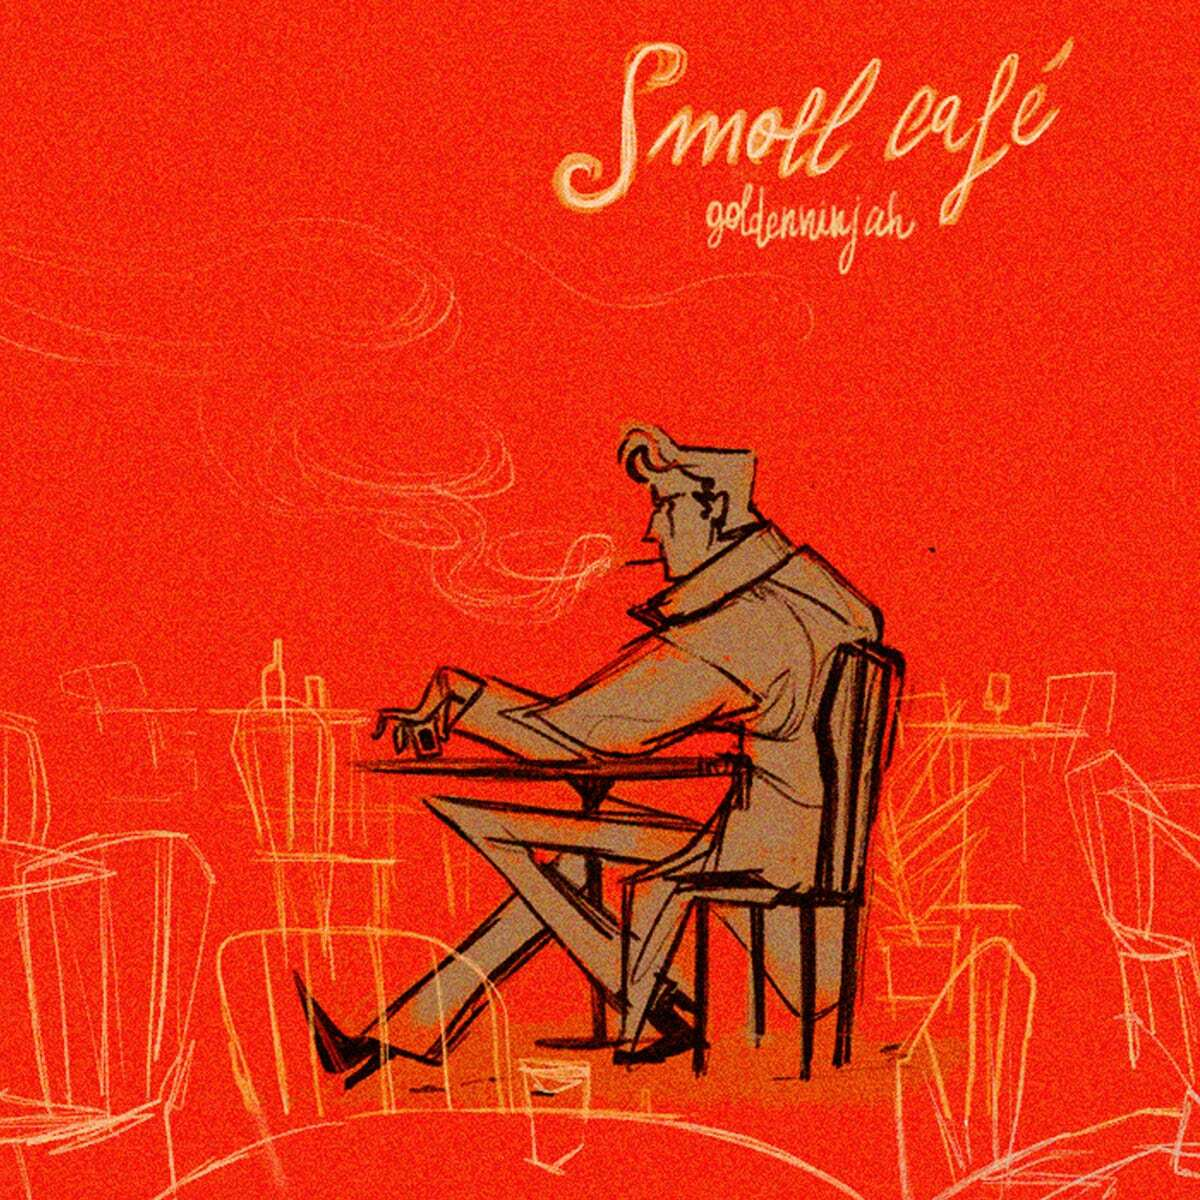 goldenninjah - Small Cafe EP